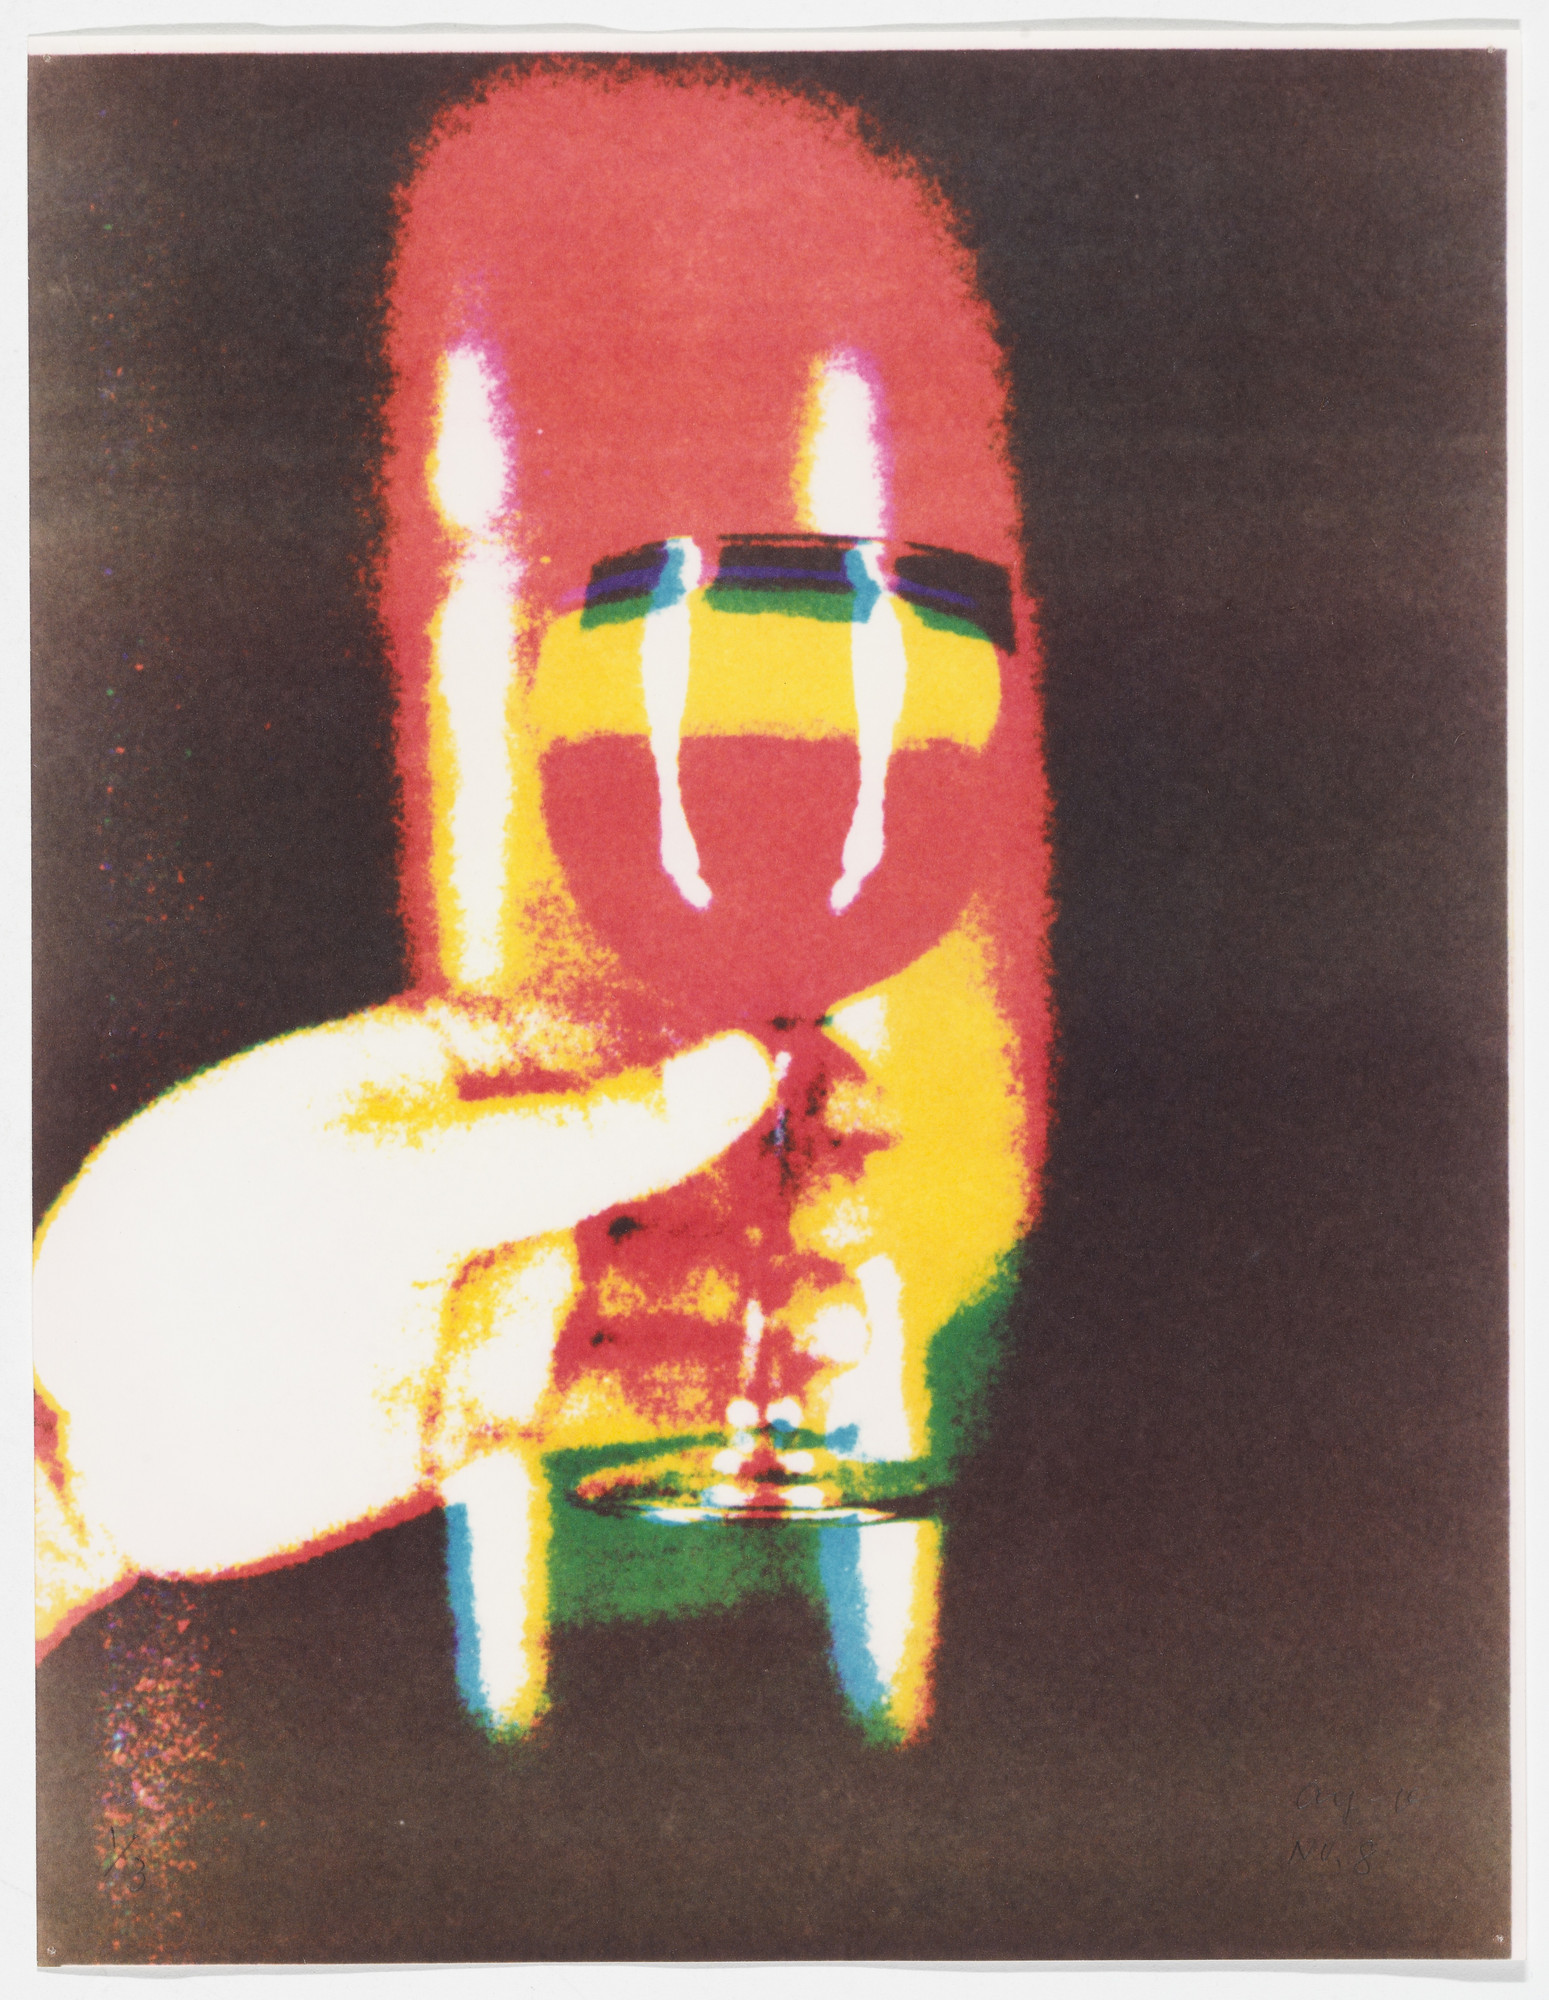 Ay-O. Then, Mr. Ay-O Got Drunk by the Rainbow. 1973